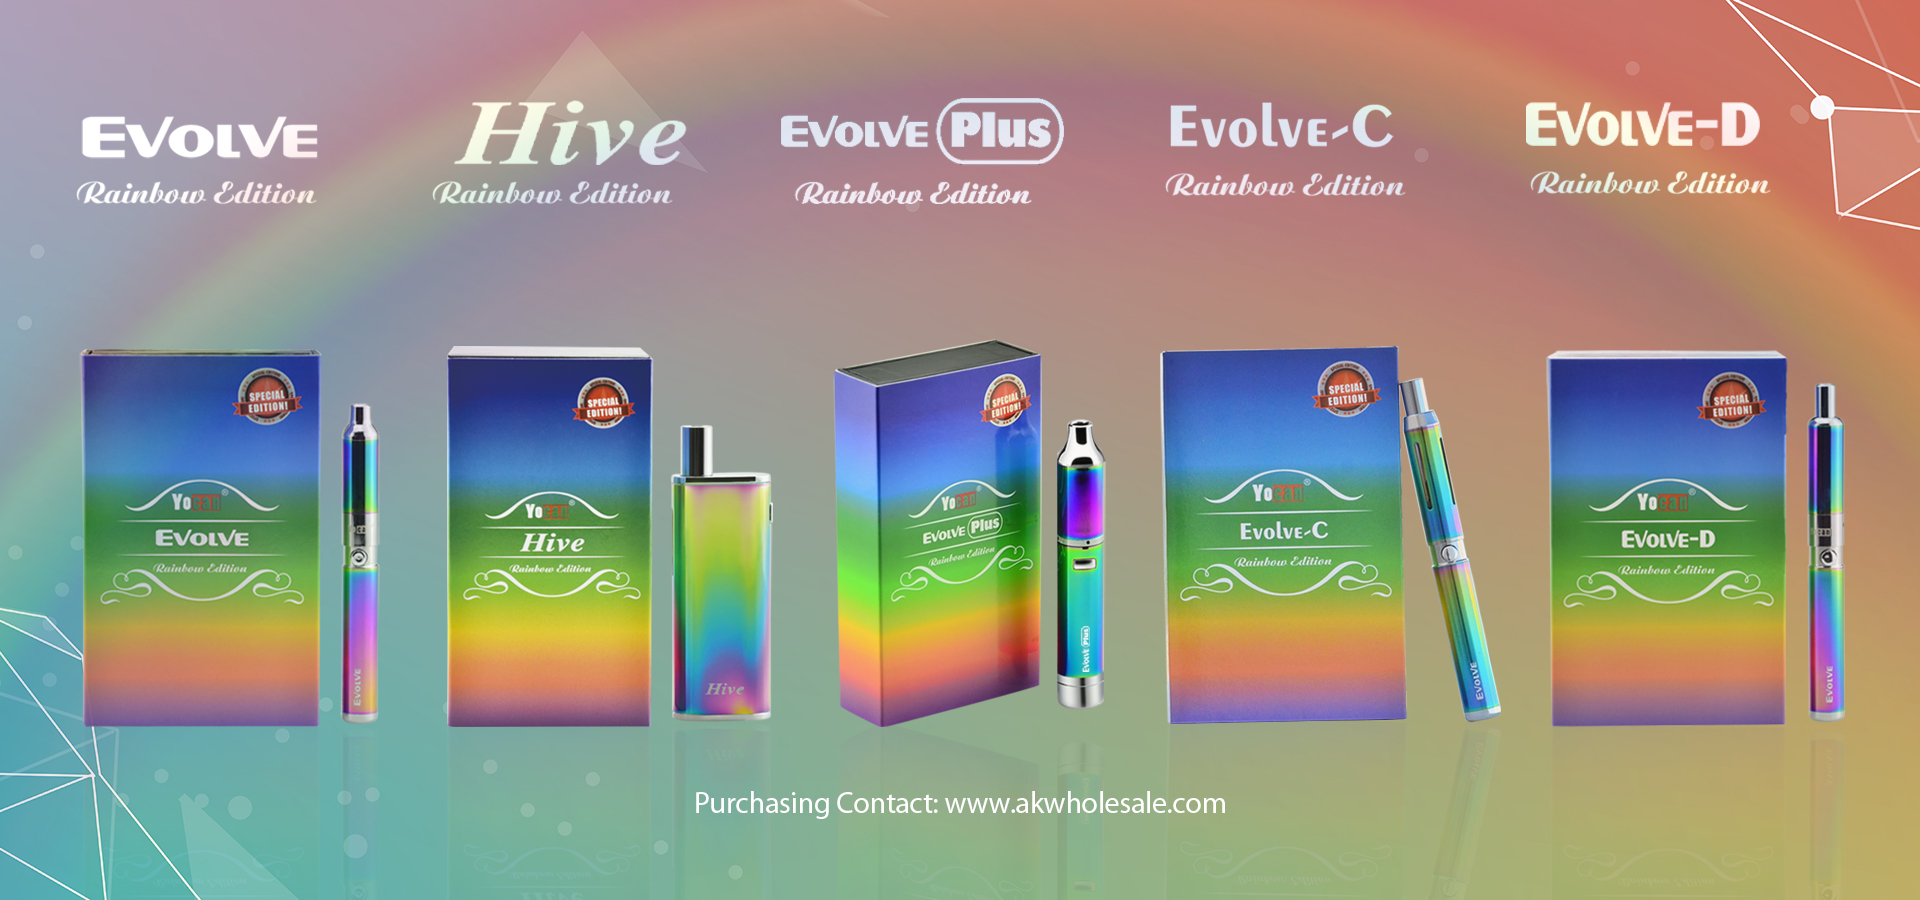 Yocan Rainbow Edition Vape pen comes with everything one needs to start having the ultimate vaping experience on the go.